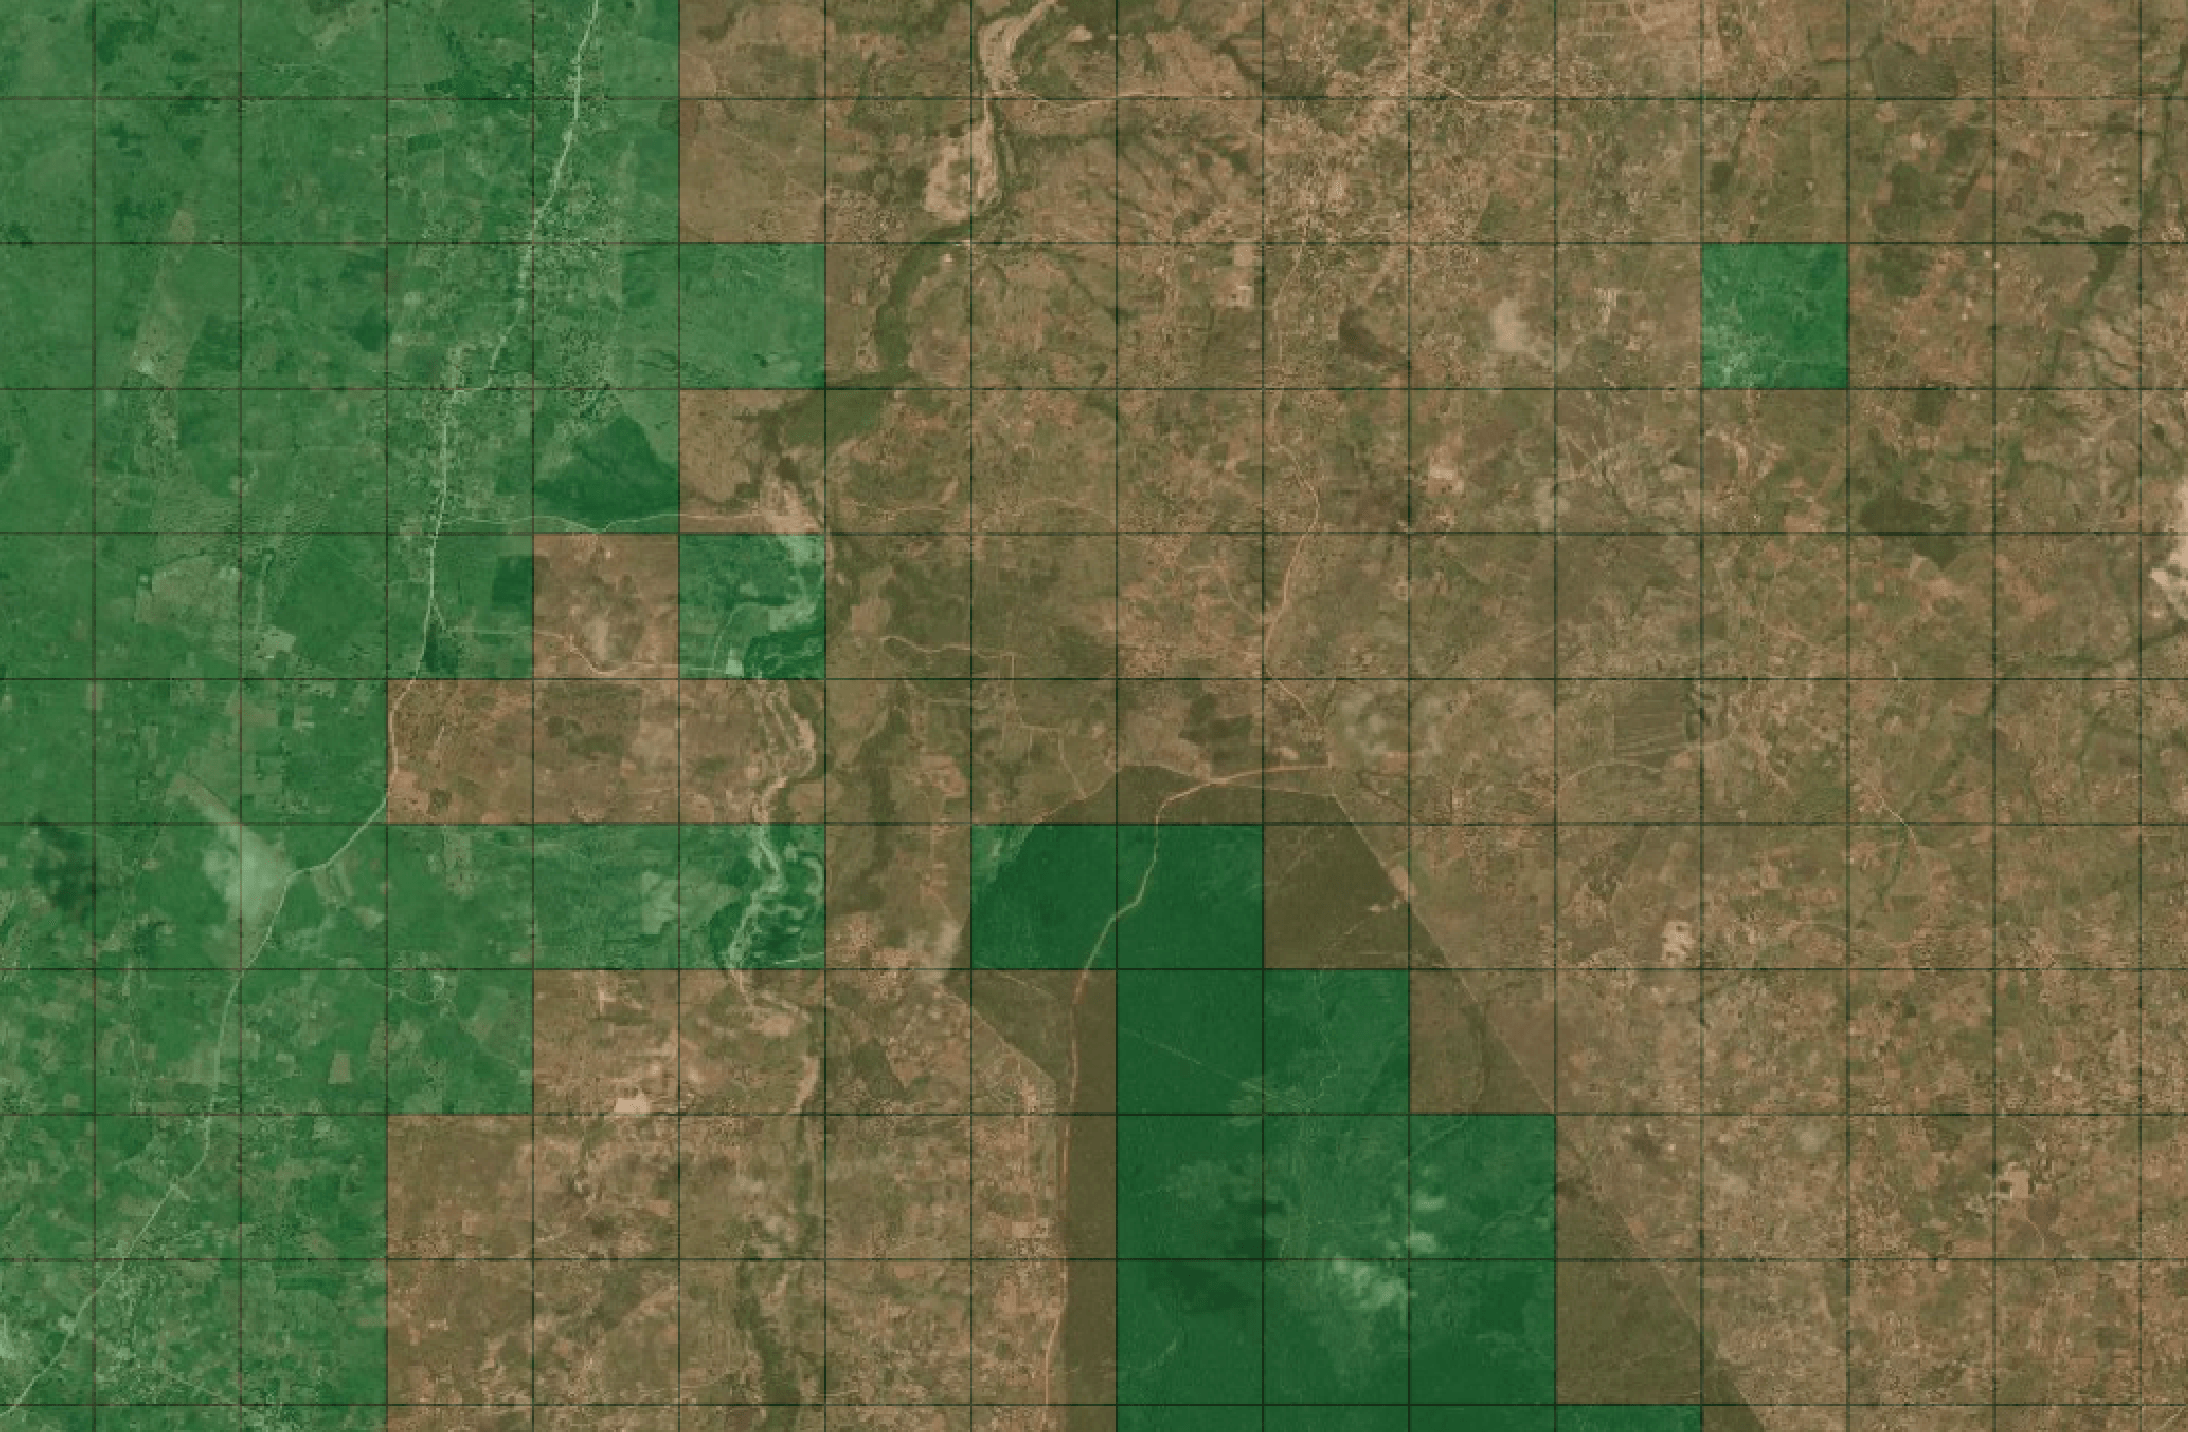 example classification image overlaid over satellite imagery